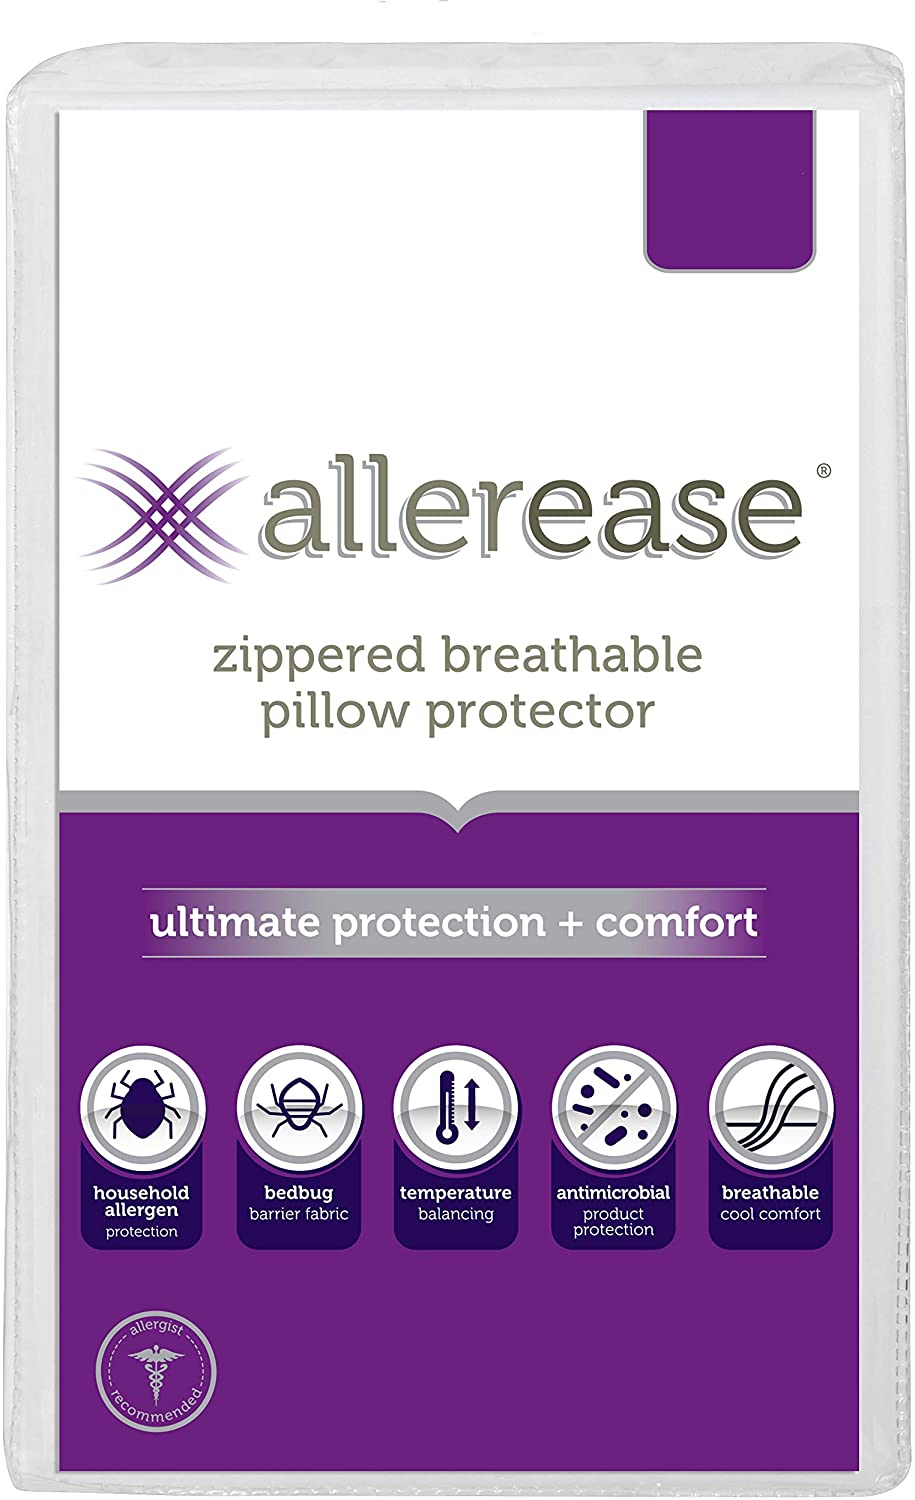 AllerEase Ultimate Protection & Comfort Temperature Balancing Pillow Protector – Zippered, Antimicrobial, Allergist Recommended Prevent Collection of Dust Mites and Allergens, Standard/Queen, 1 Pack